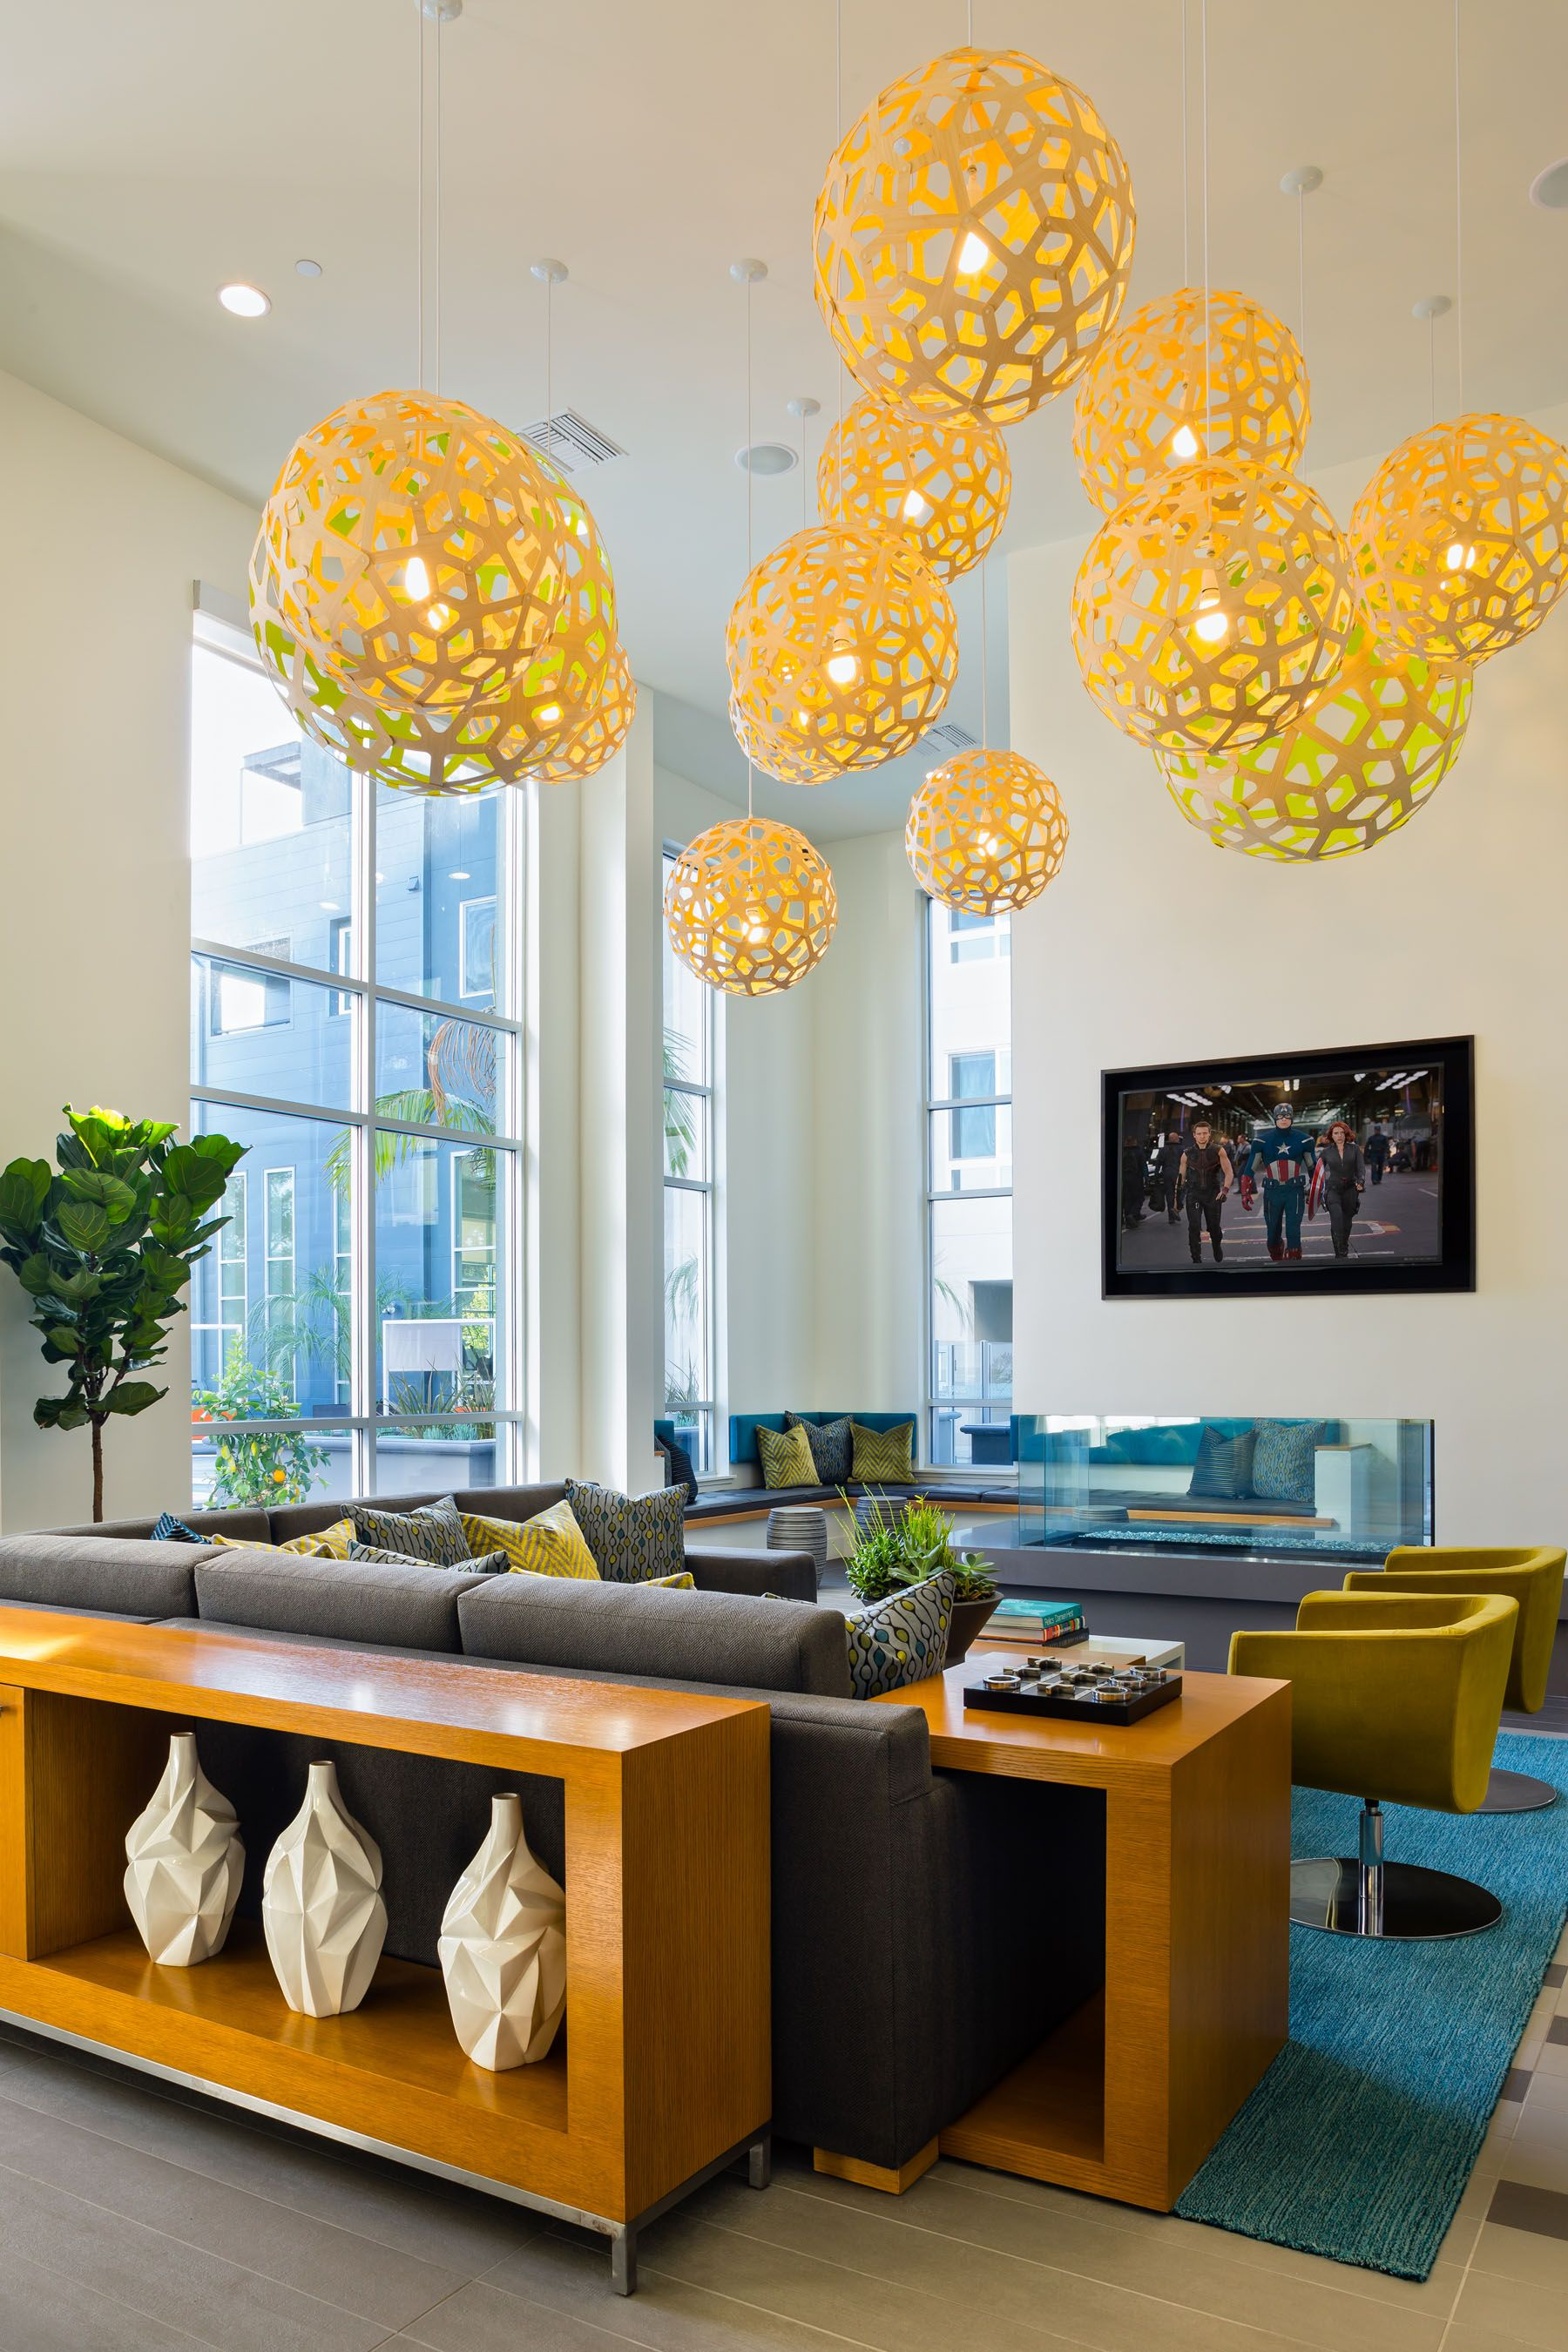 David trubridge coral pendant lights at the aire apartments in san david trubridge coral pendant lights at the aire apartments in san jose click image for aloadofball Gallery